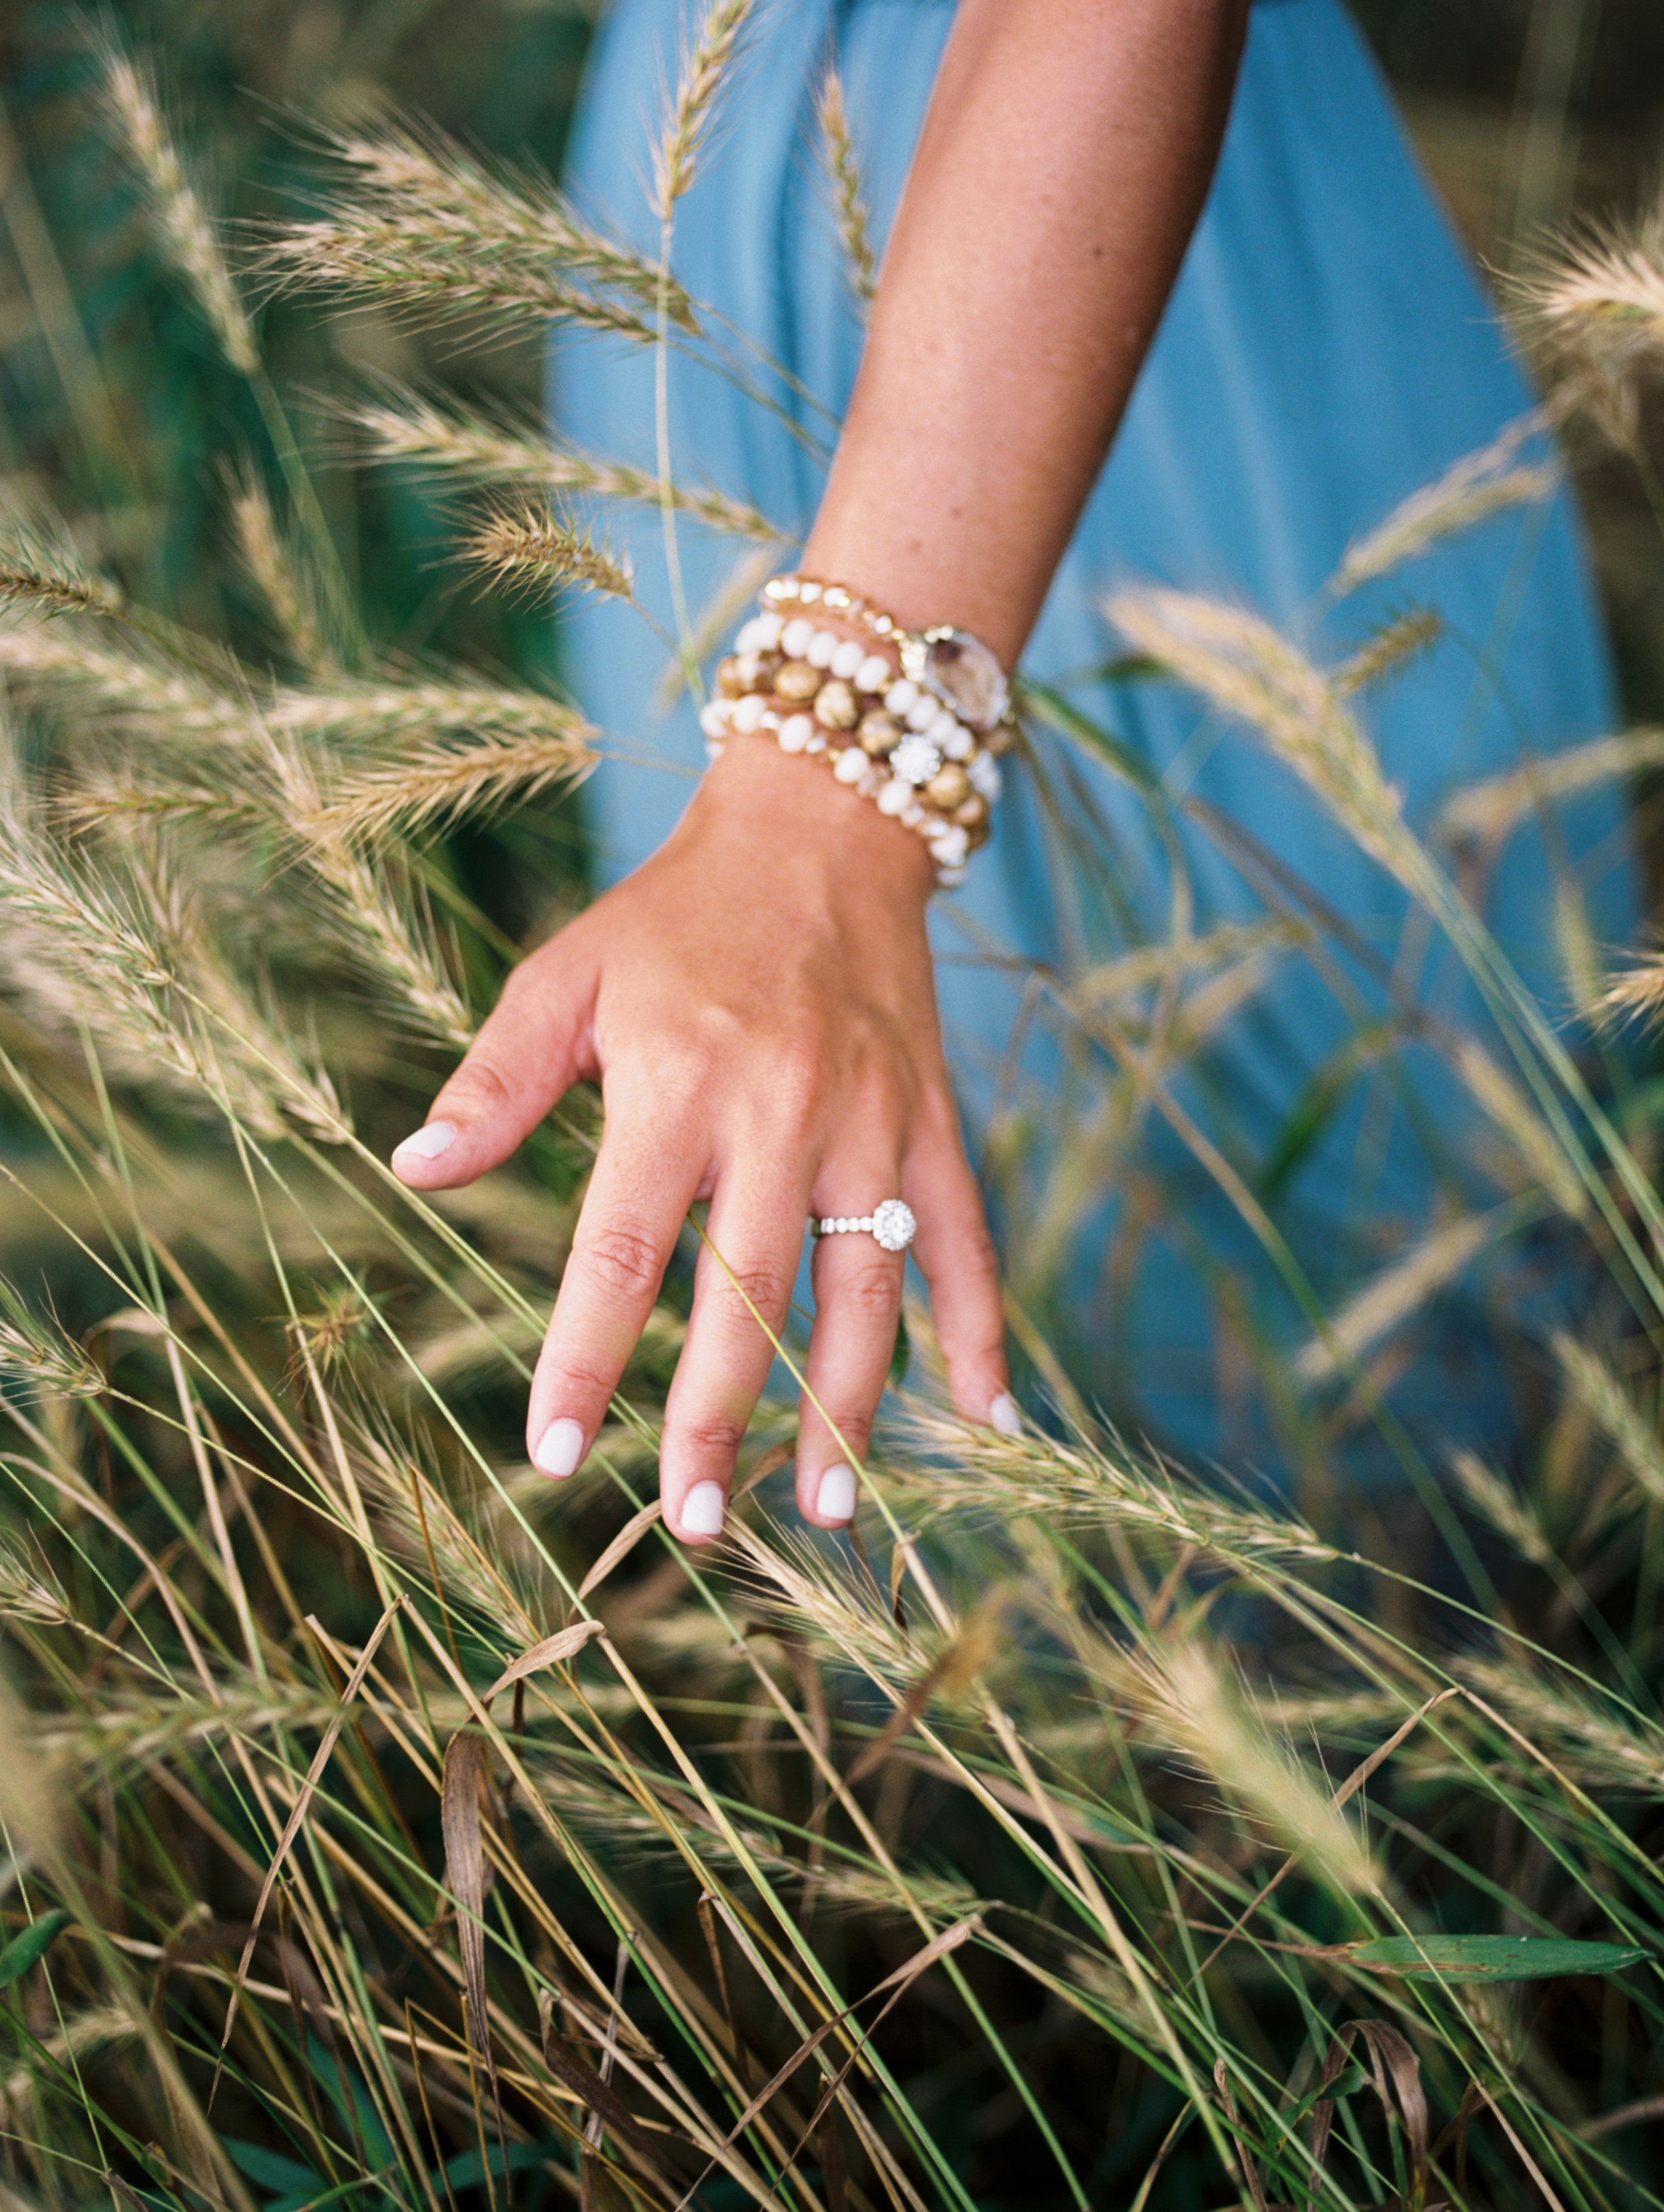 Brittany_Wes_Farm_Engagement_Abigail_Malone_Photography-151.jpg